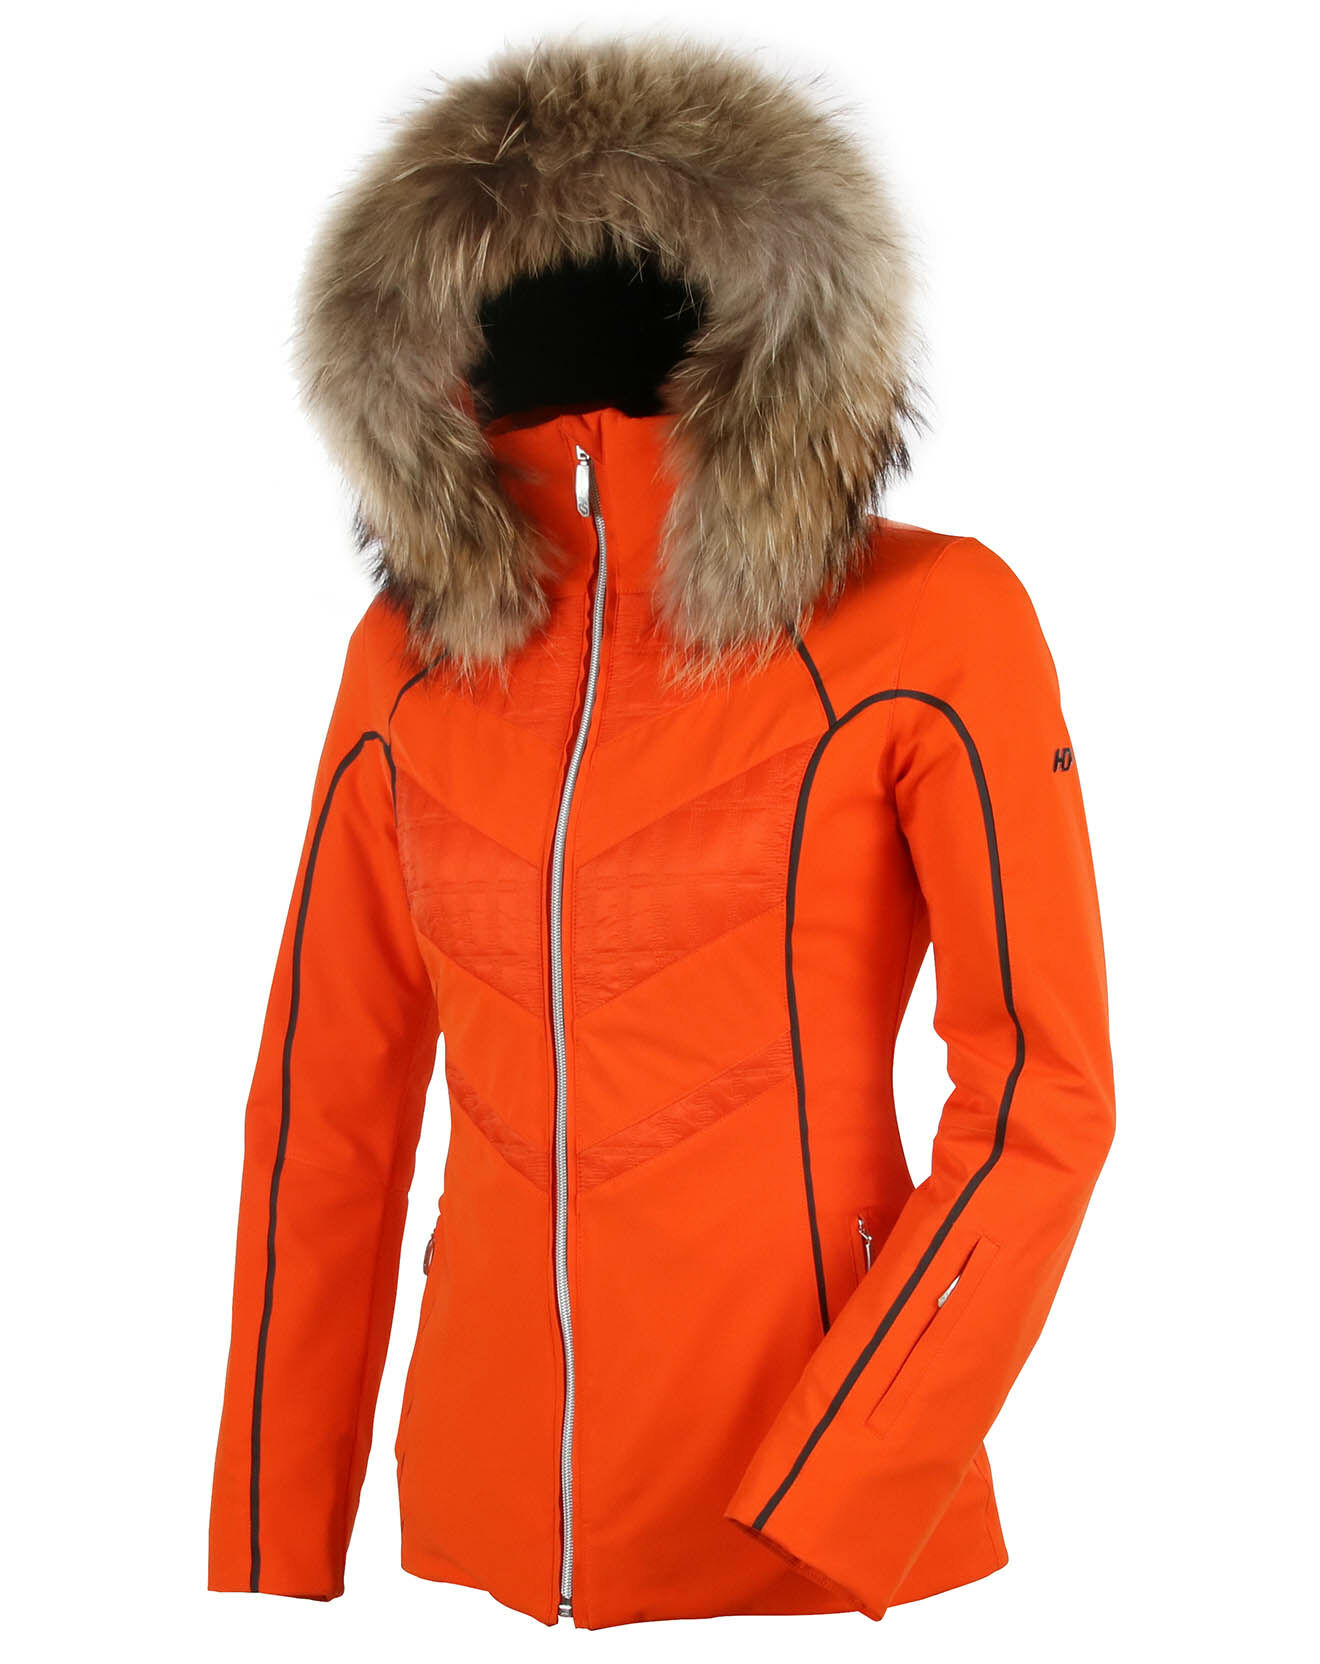 Veste de ski Parrot Fourrure Véritable orange